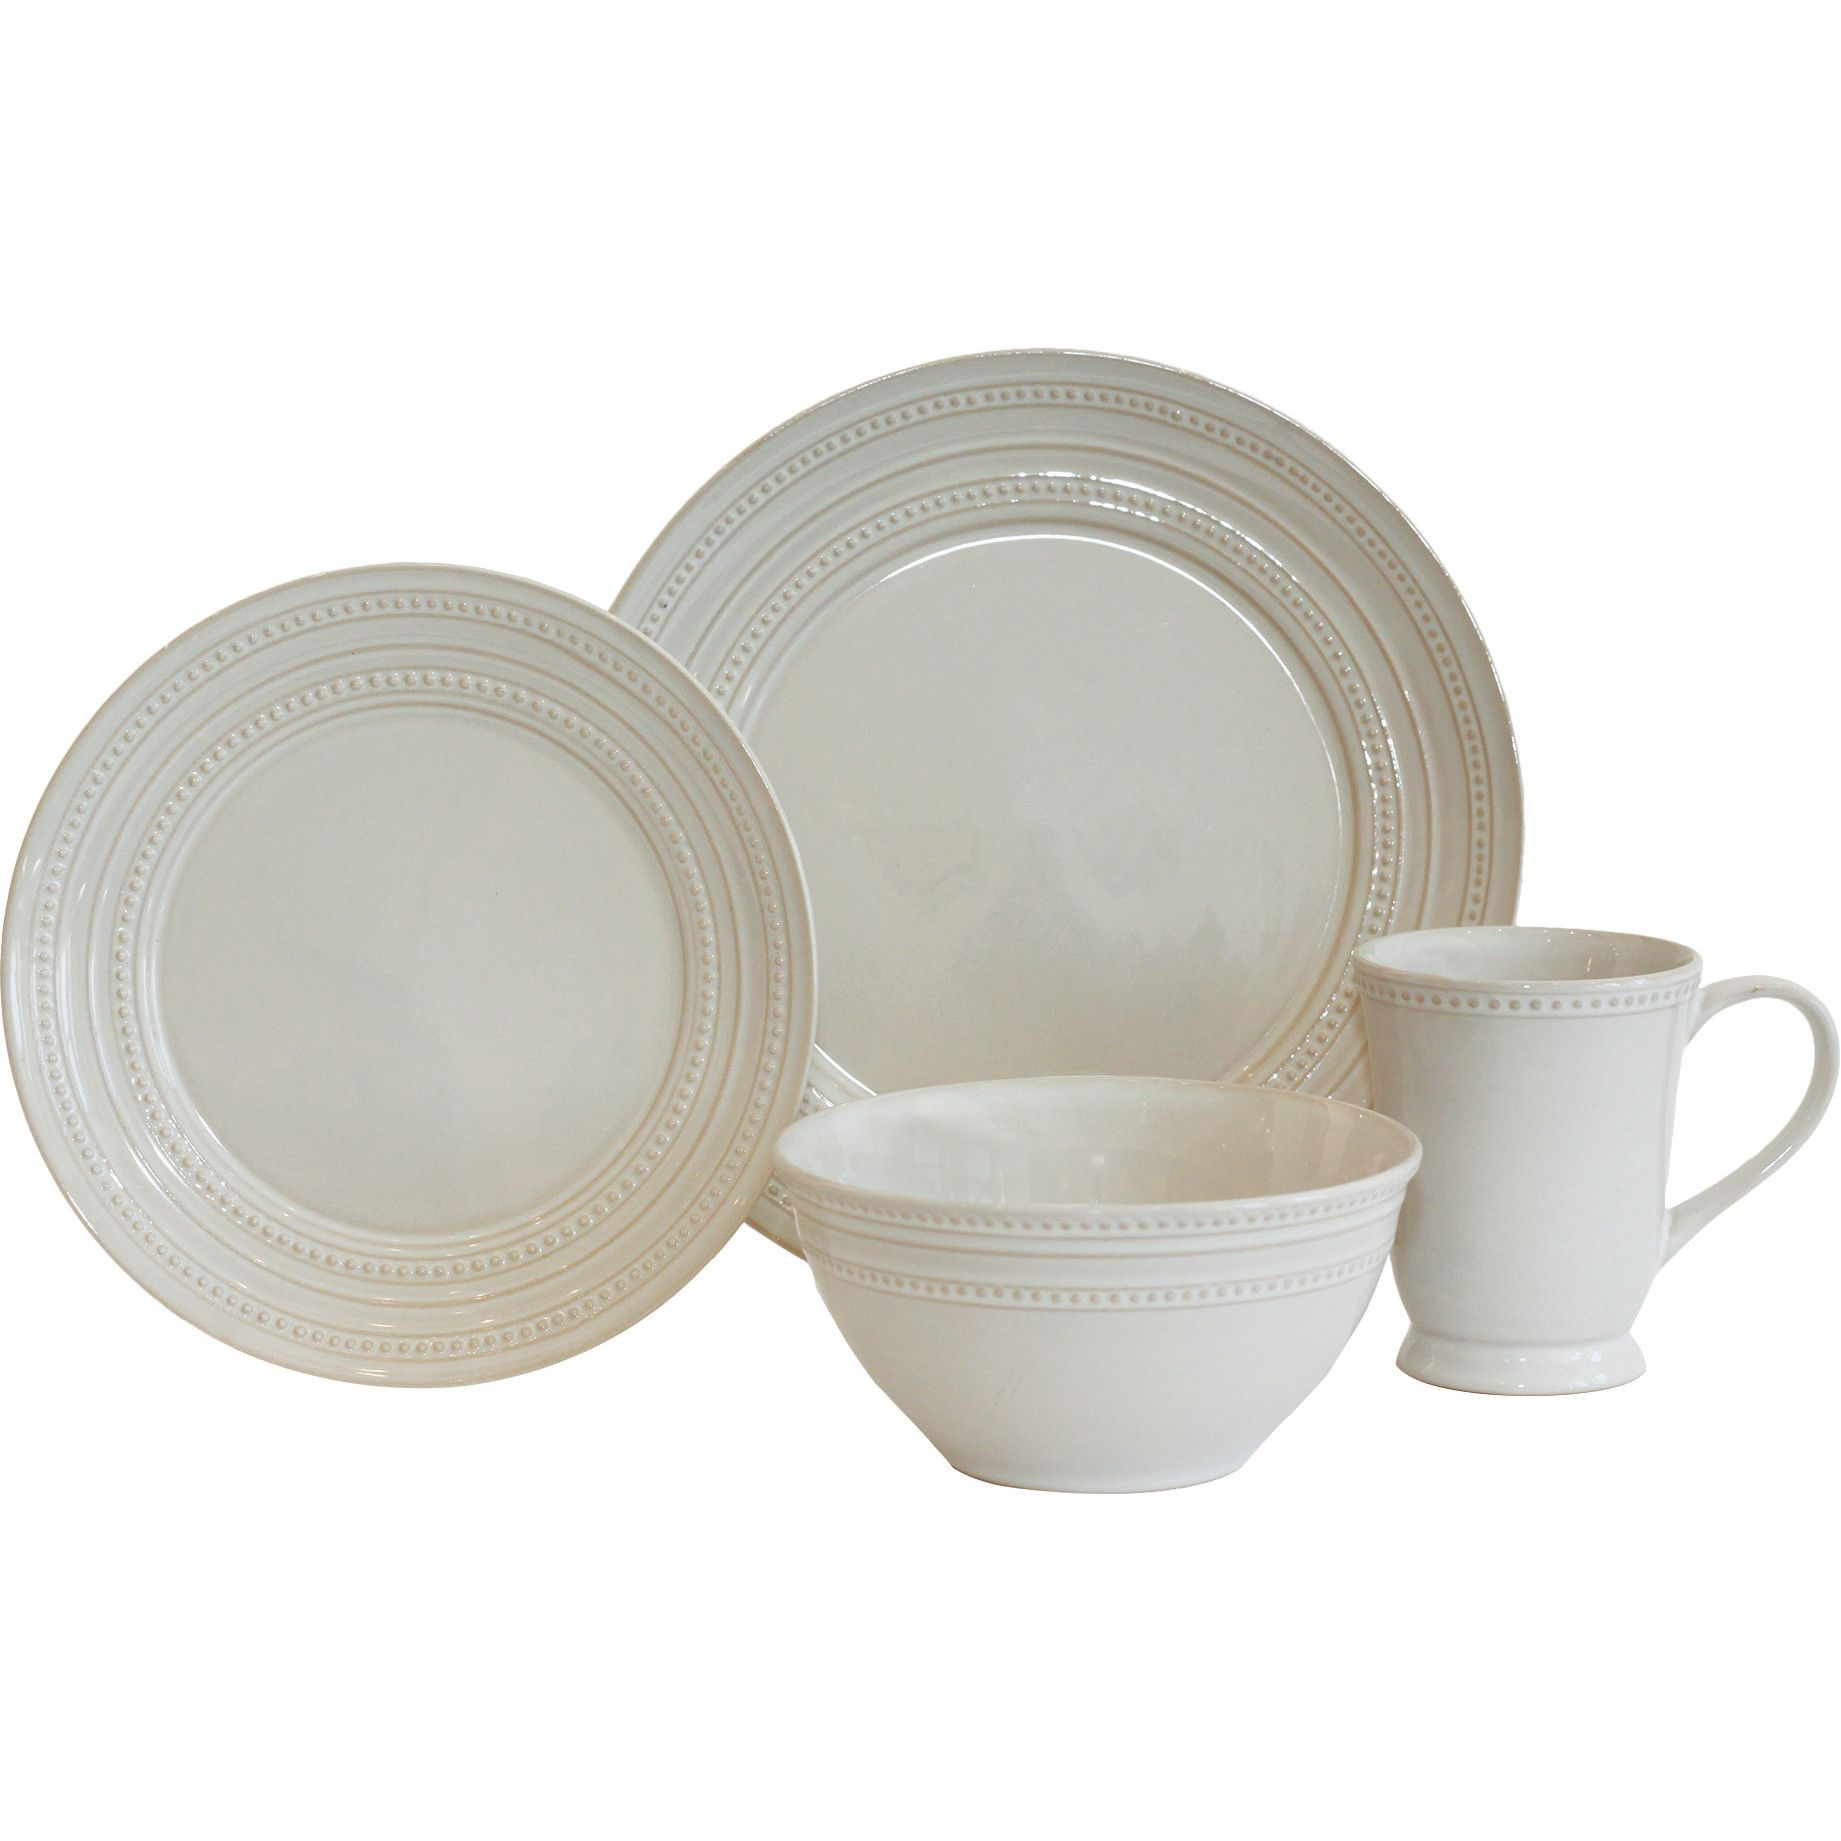 Baum Darby 16 Piece Dinnerware Set & Reviews | Wayfair | For the ...